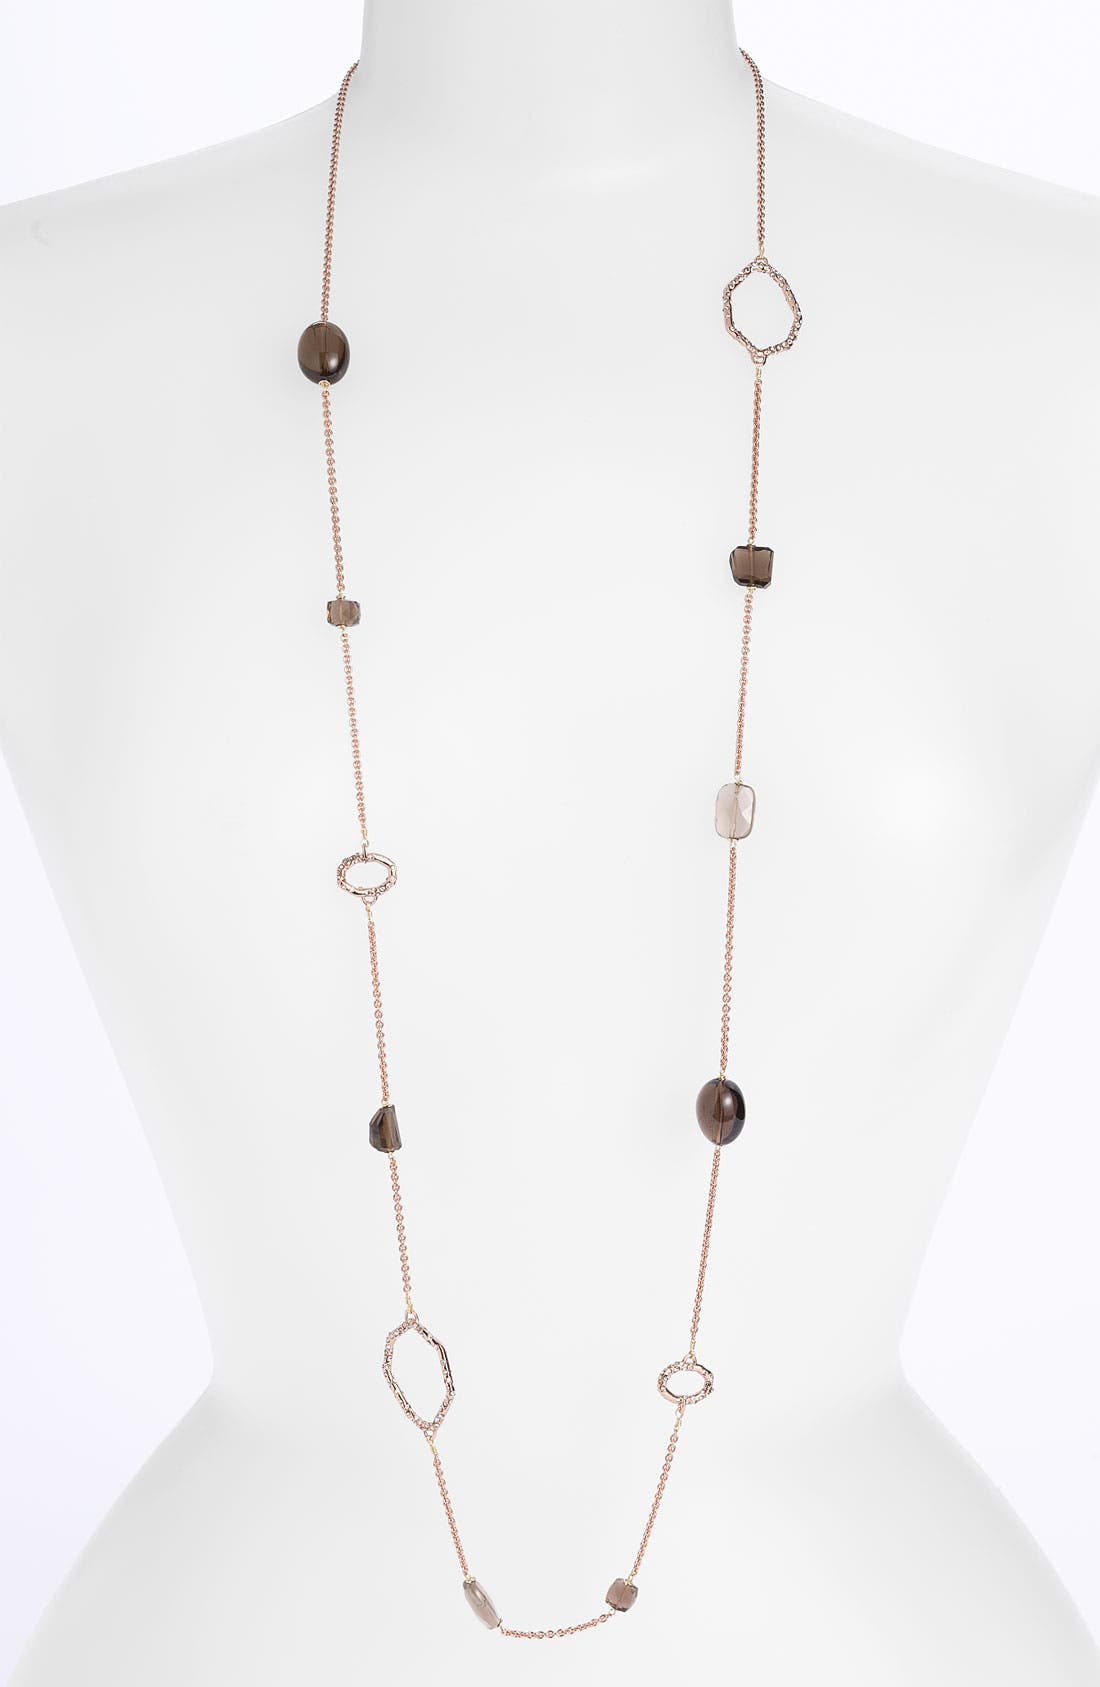 Main Image - Alexis Bittar 'Delano' Long Station Necklace (Nordstrom Exclusive)